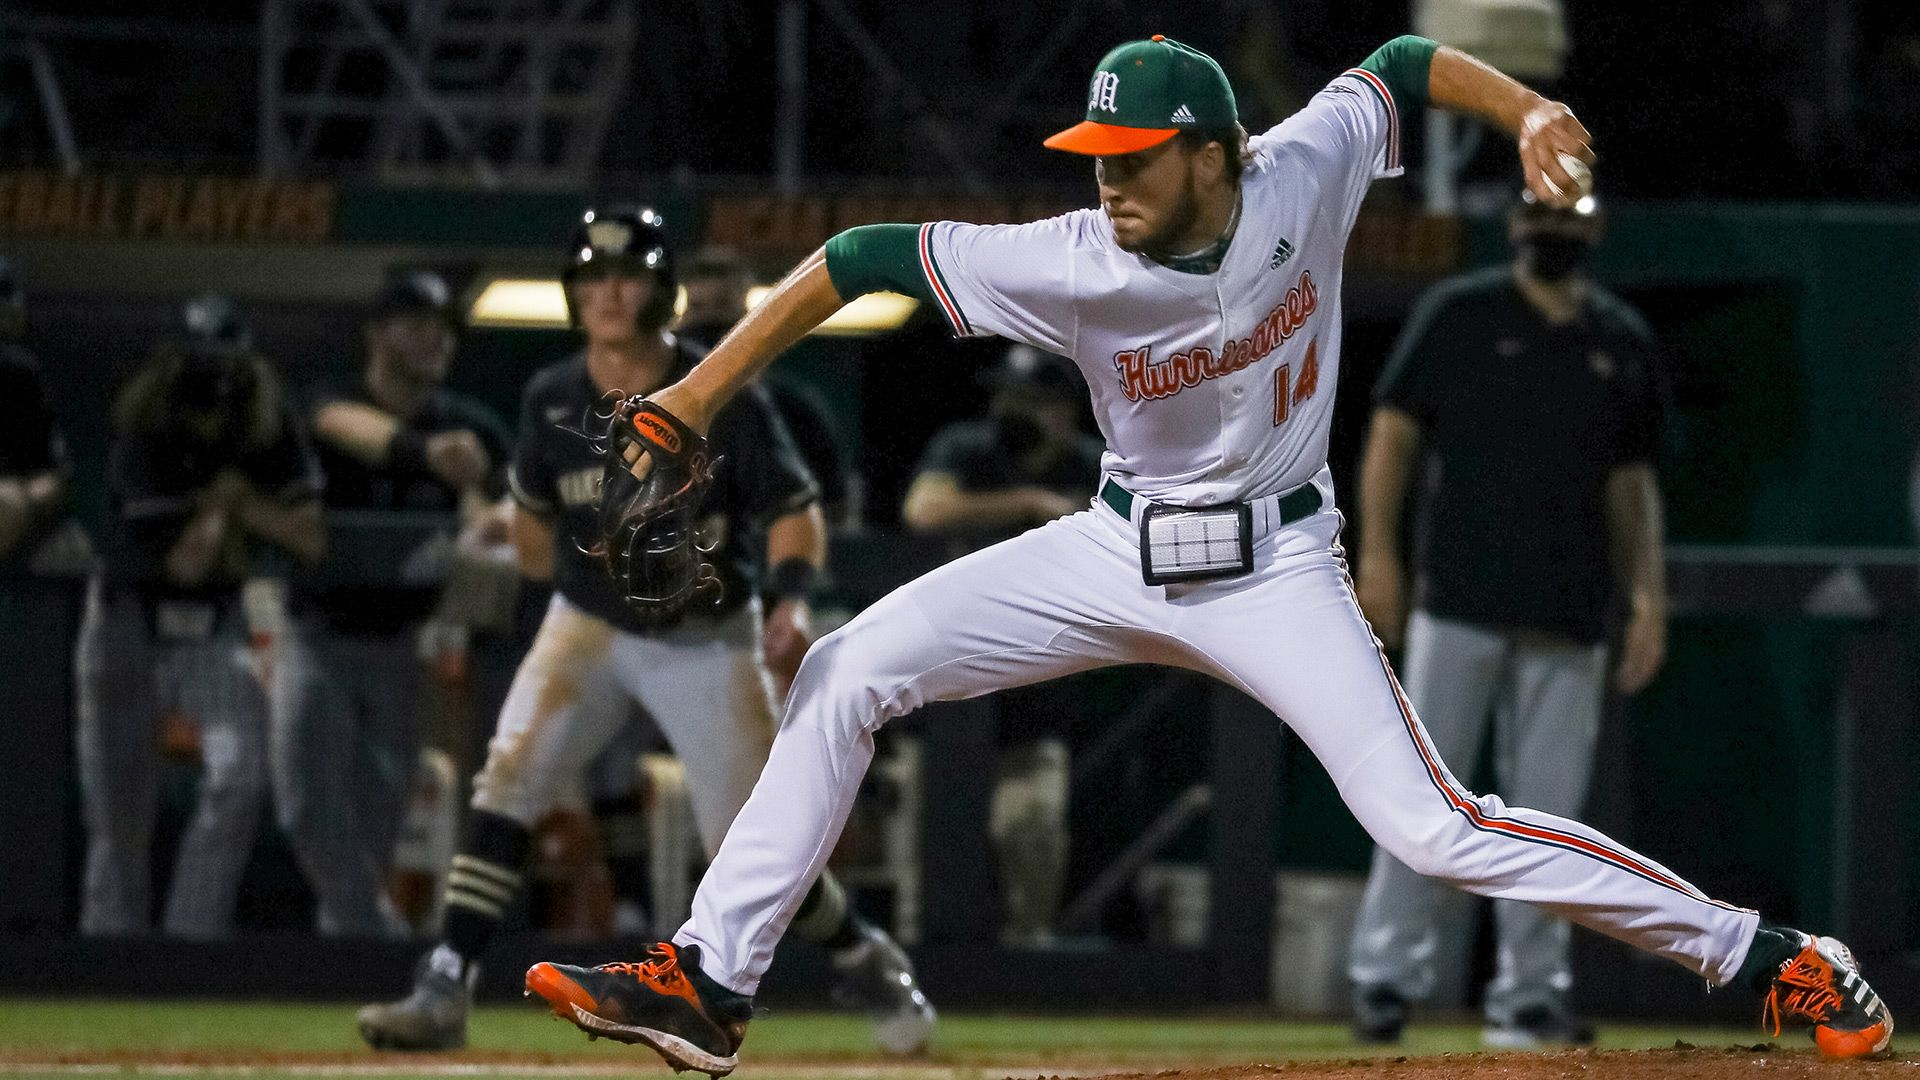 Five Canes Earn All-ACC Honors